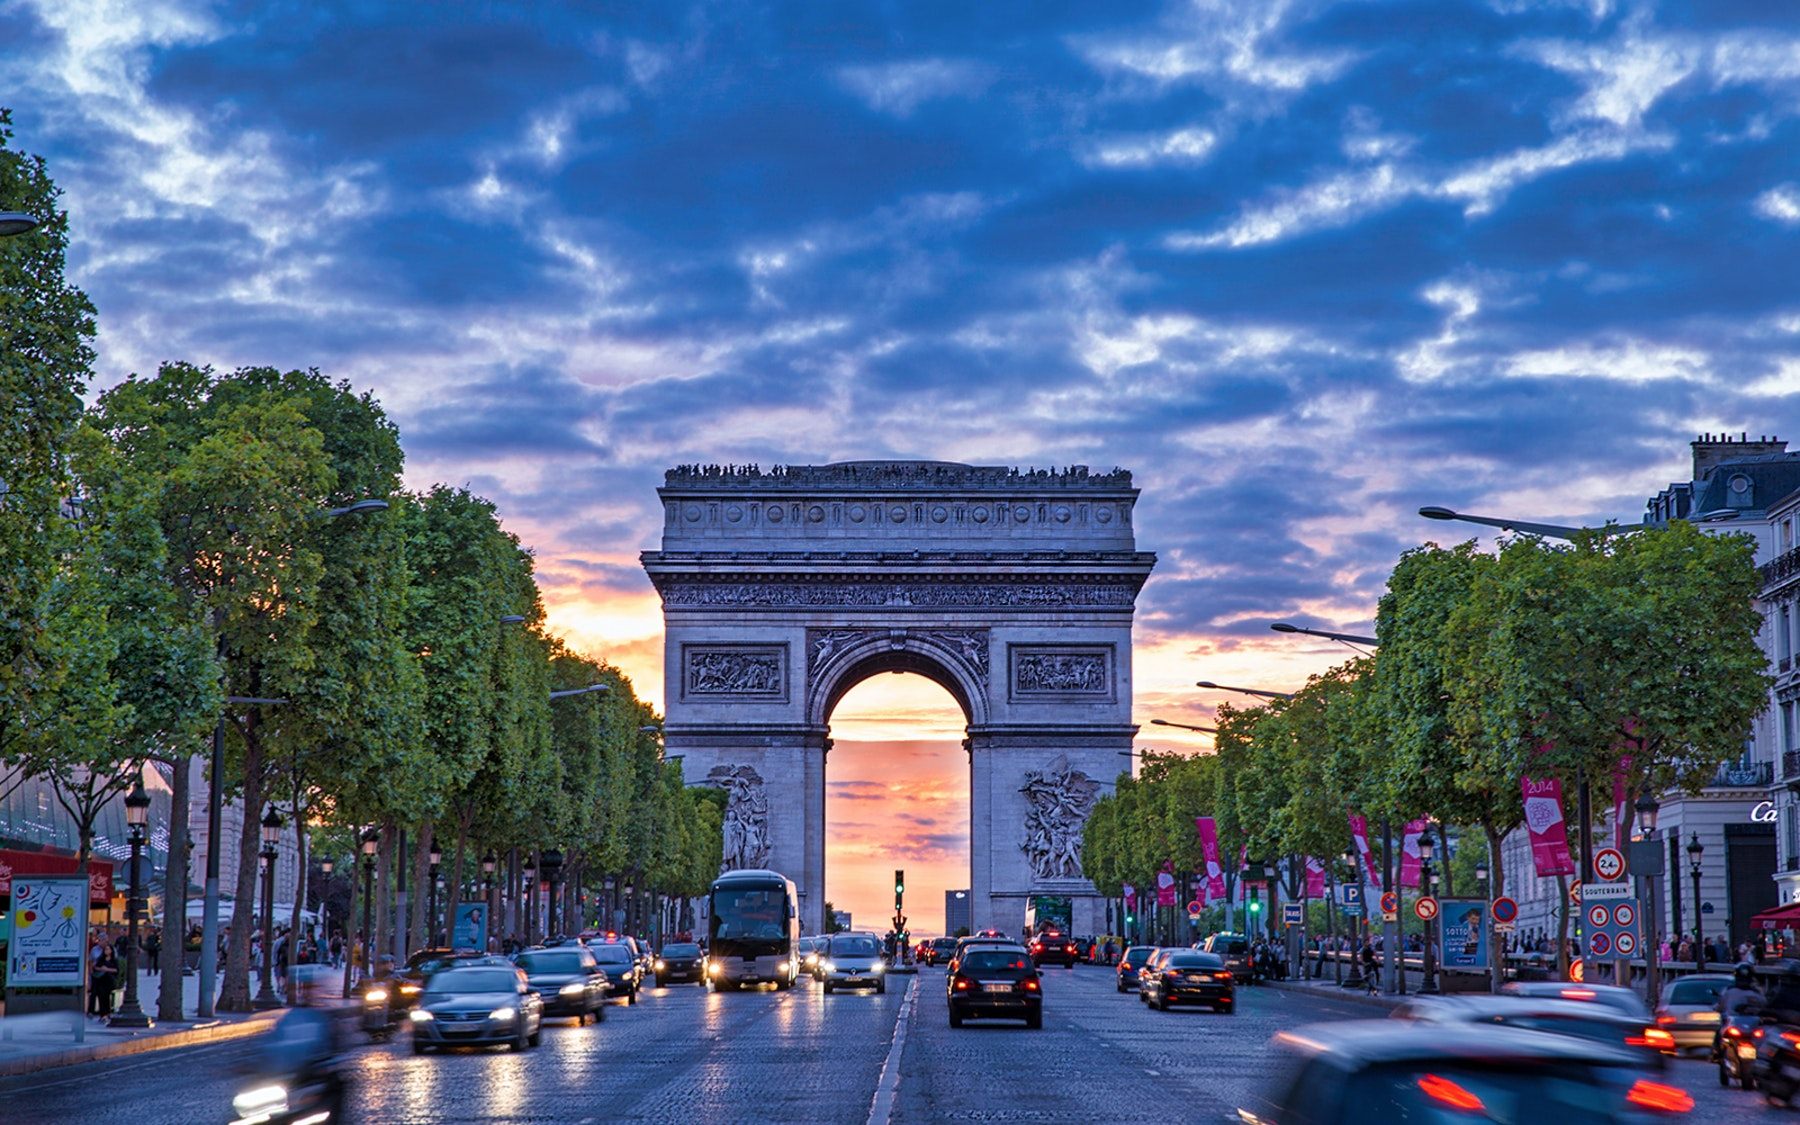 Paris Arc de Triomphe Tickets